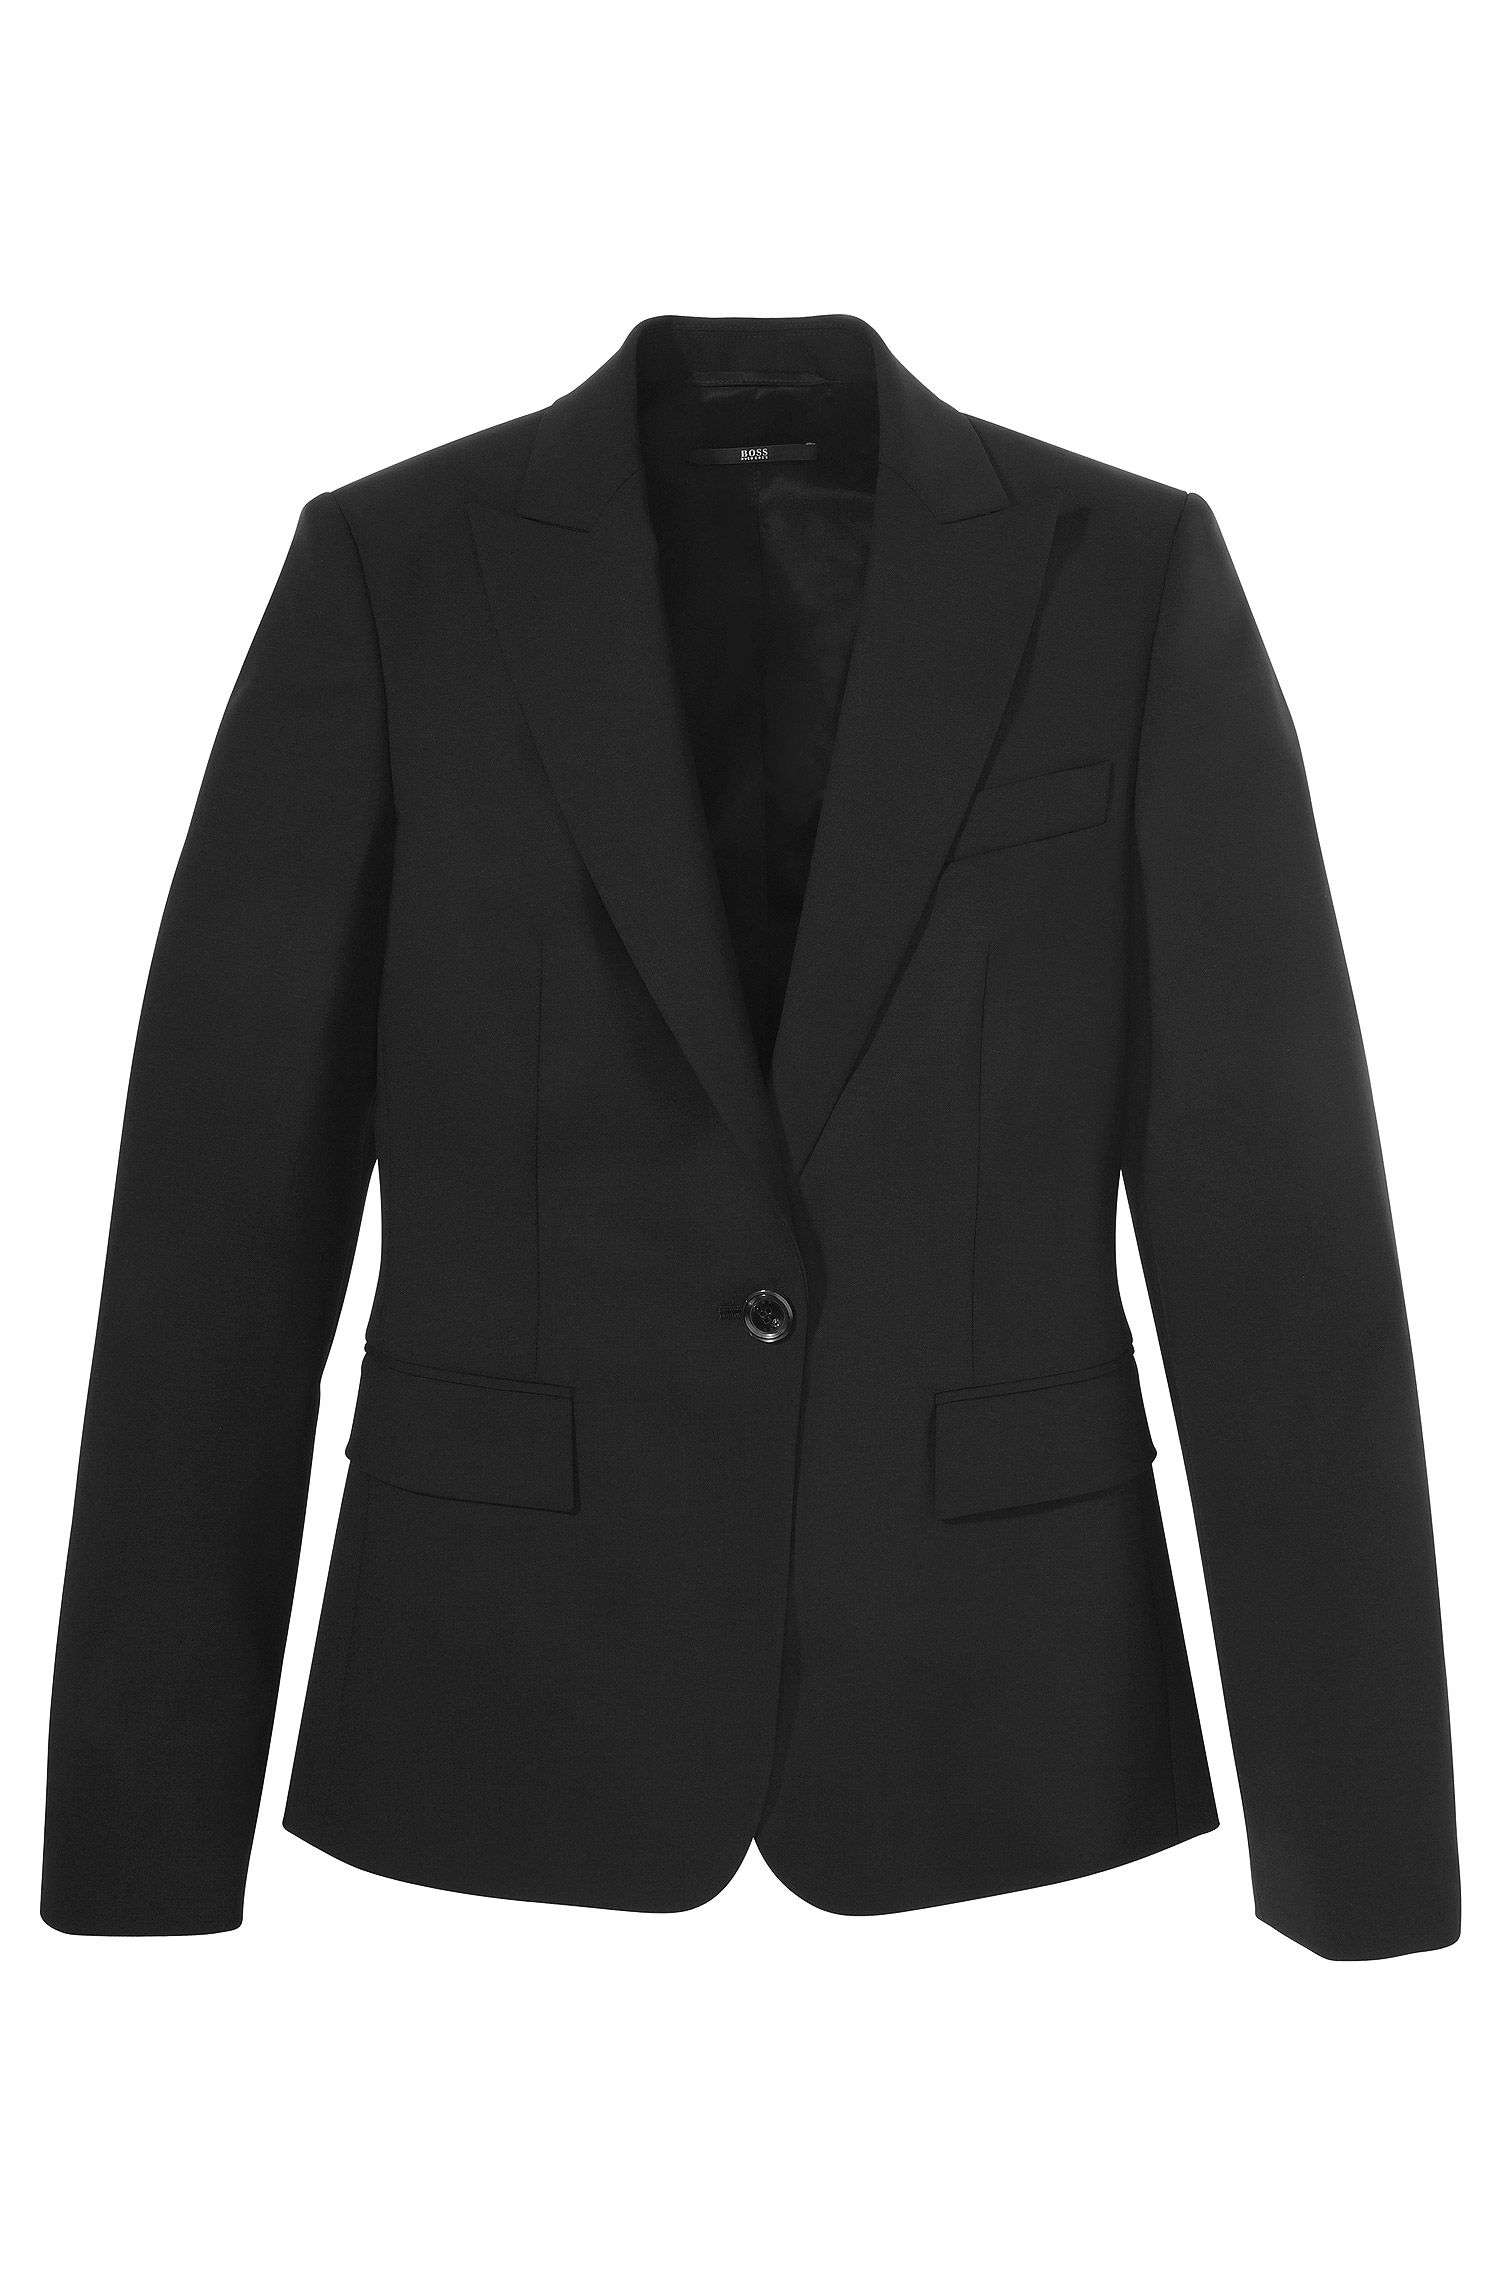 Blazer ´Juicy 6` aus Schurwoll-Elasthan-Mix